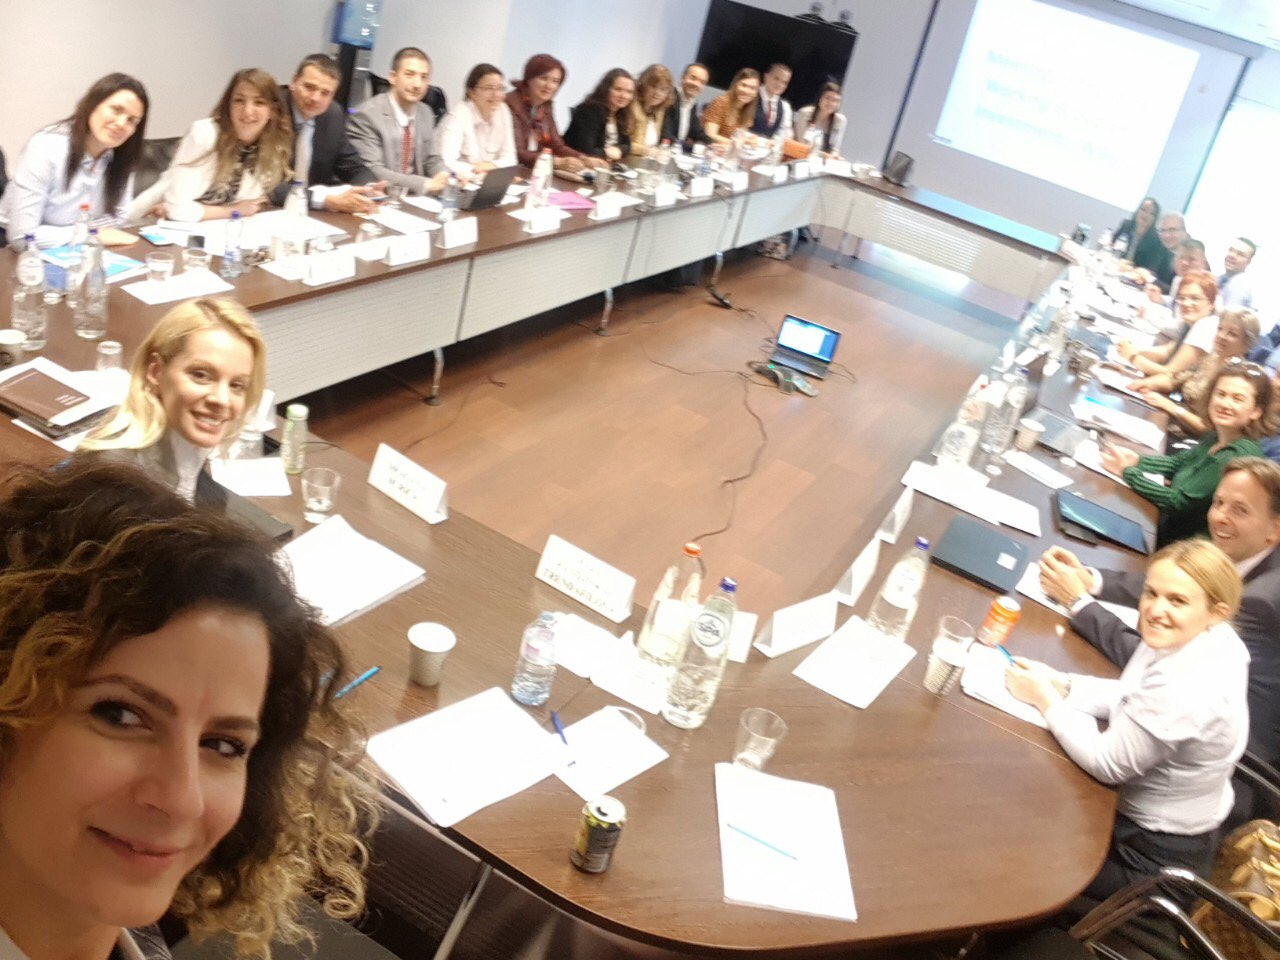 RCC's SEEIC - CEFTA Joint Working Group on Investments working on the finalisation of the Regional Investment Reform Agenda (RIRA) deliverable for Poznan Summit at the meeting in Brussels, 23 May 2019 (Photo: RCC/Ivana Gardasevic)